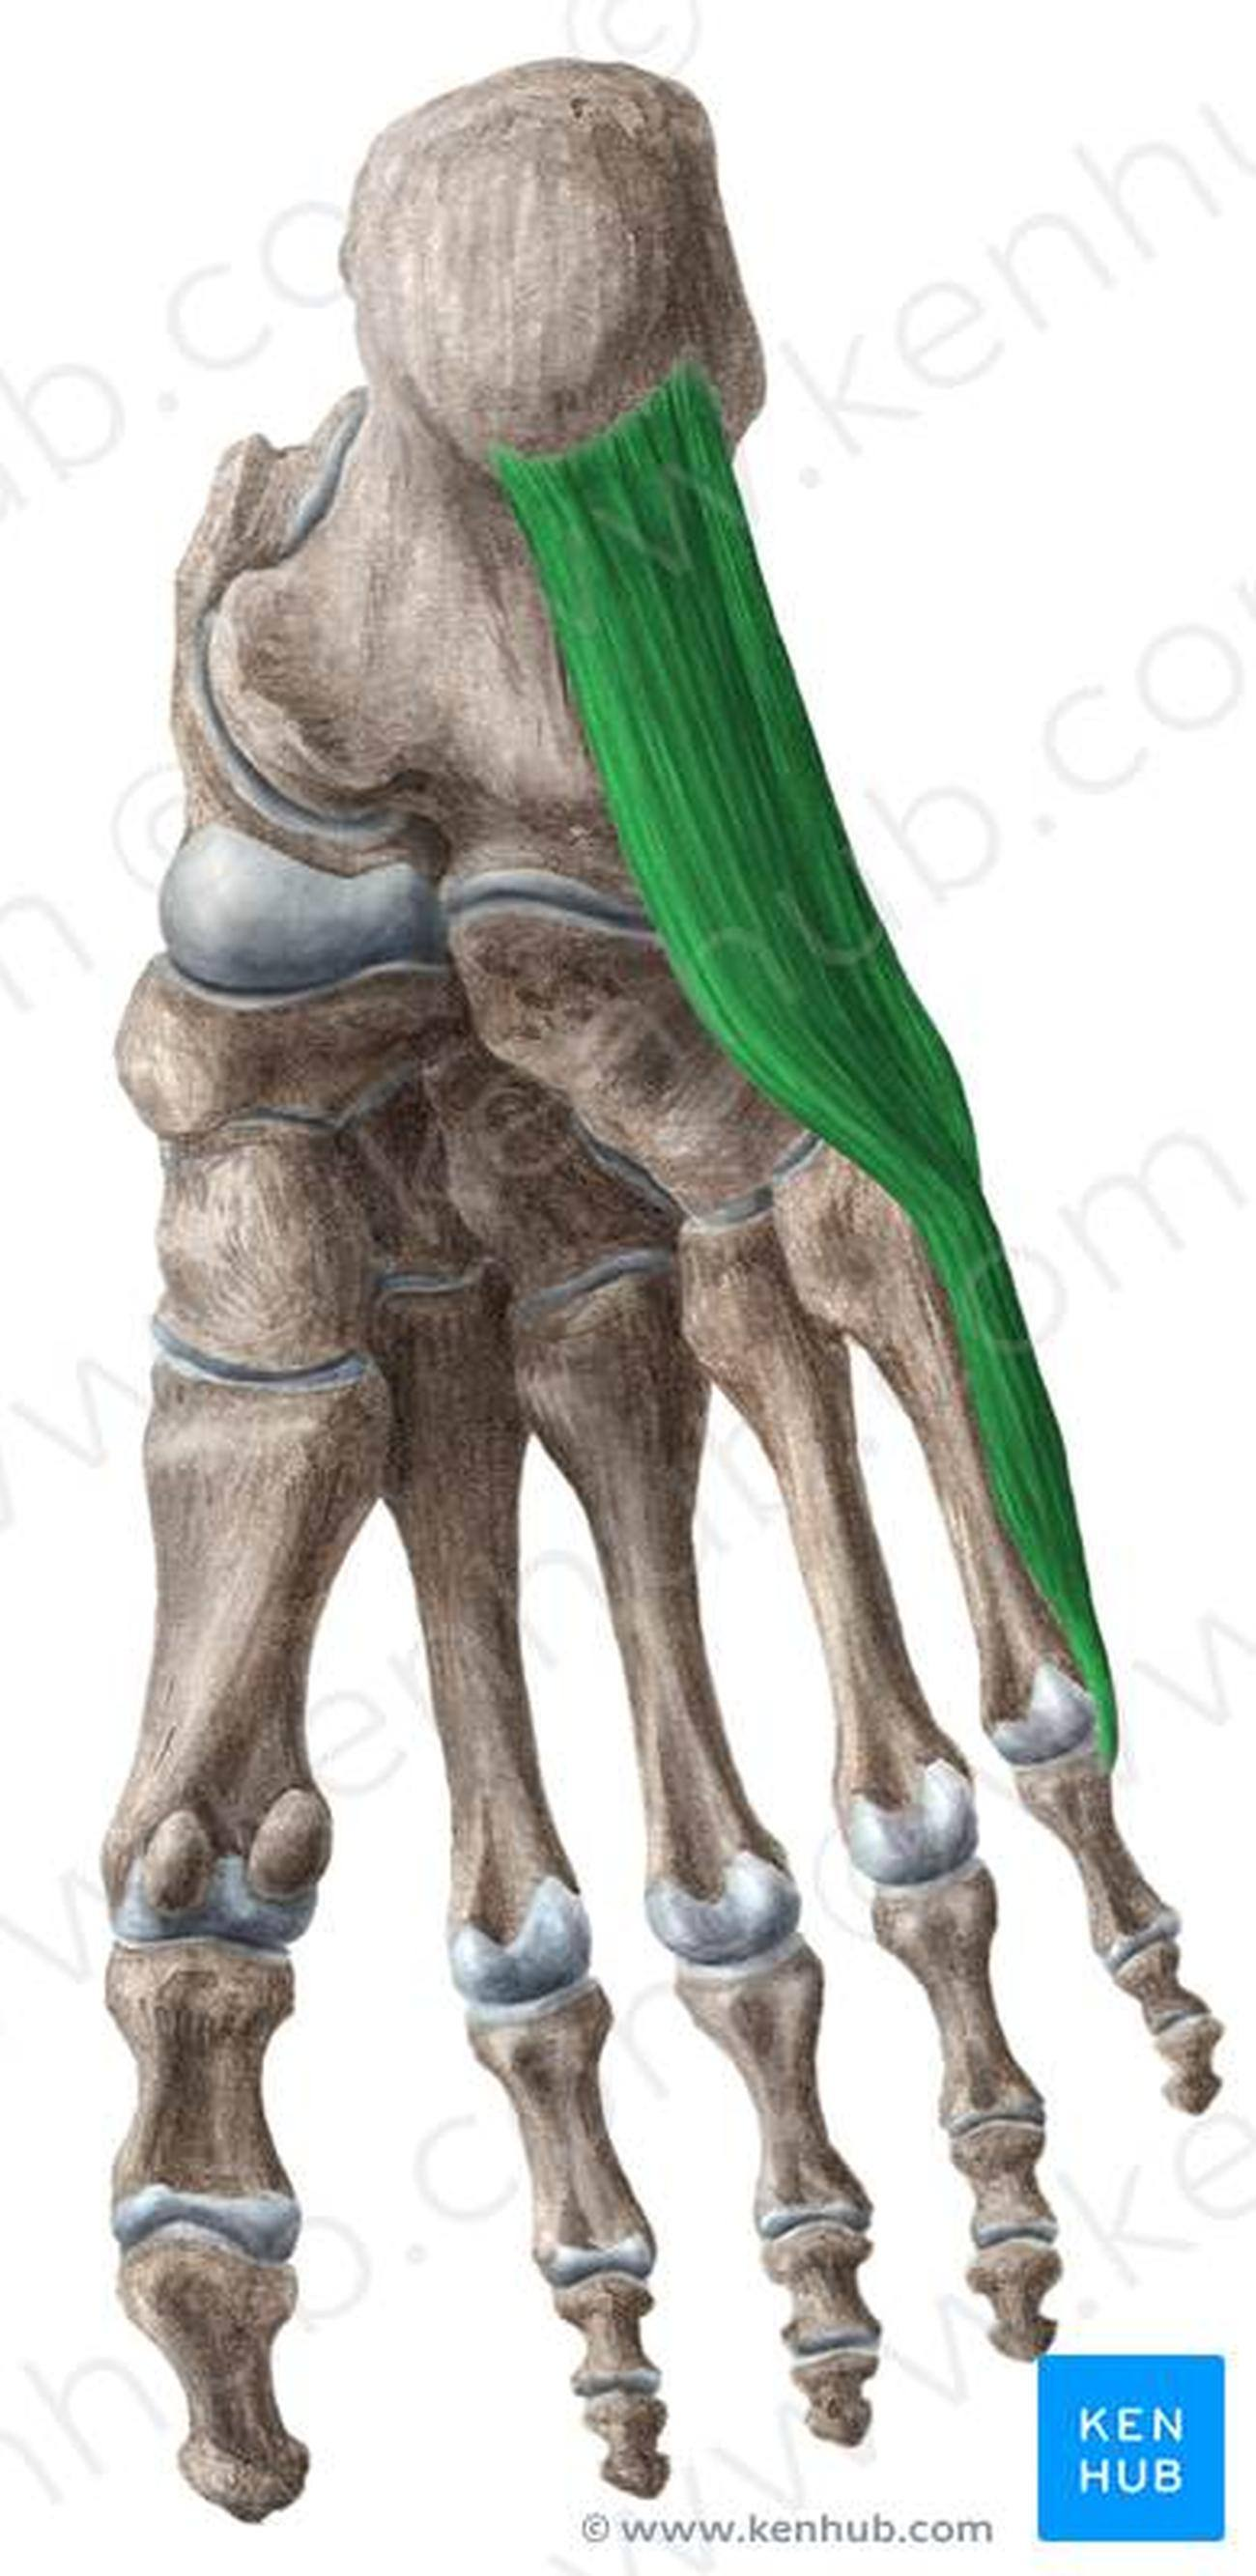 Pictures Of Abductor Digiti Minimi Muscle